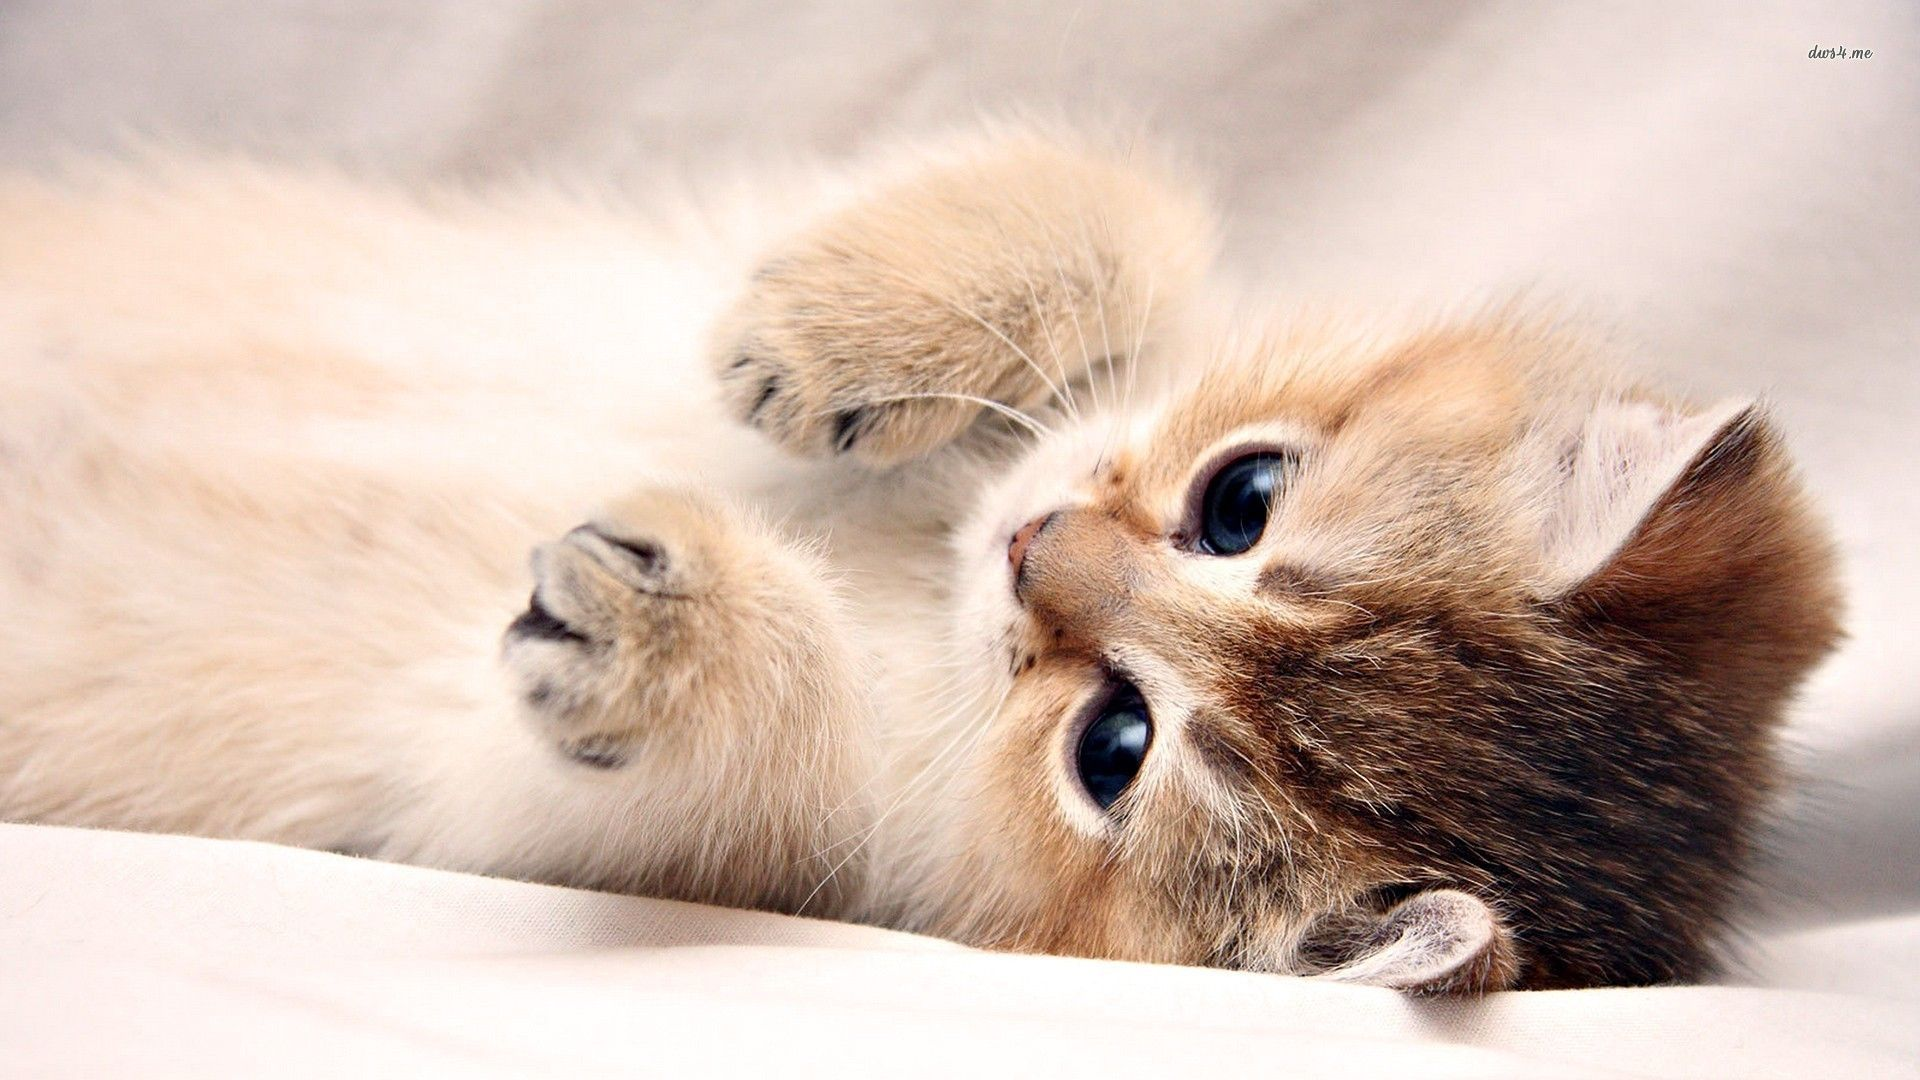 Kitten wallpaper 1280x800 - Download Best HD Desktop Wallpapers .